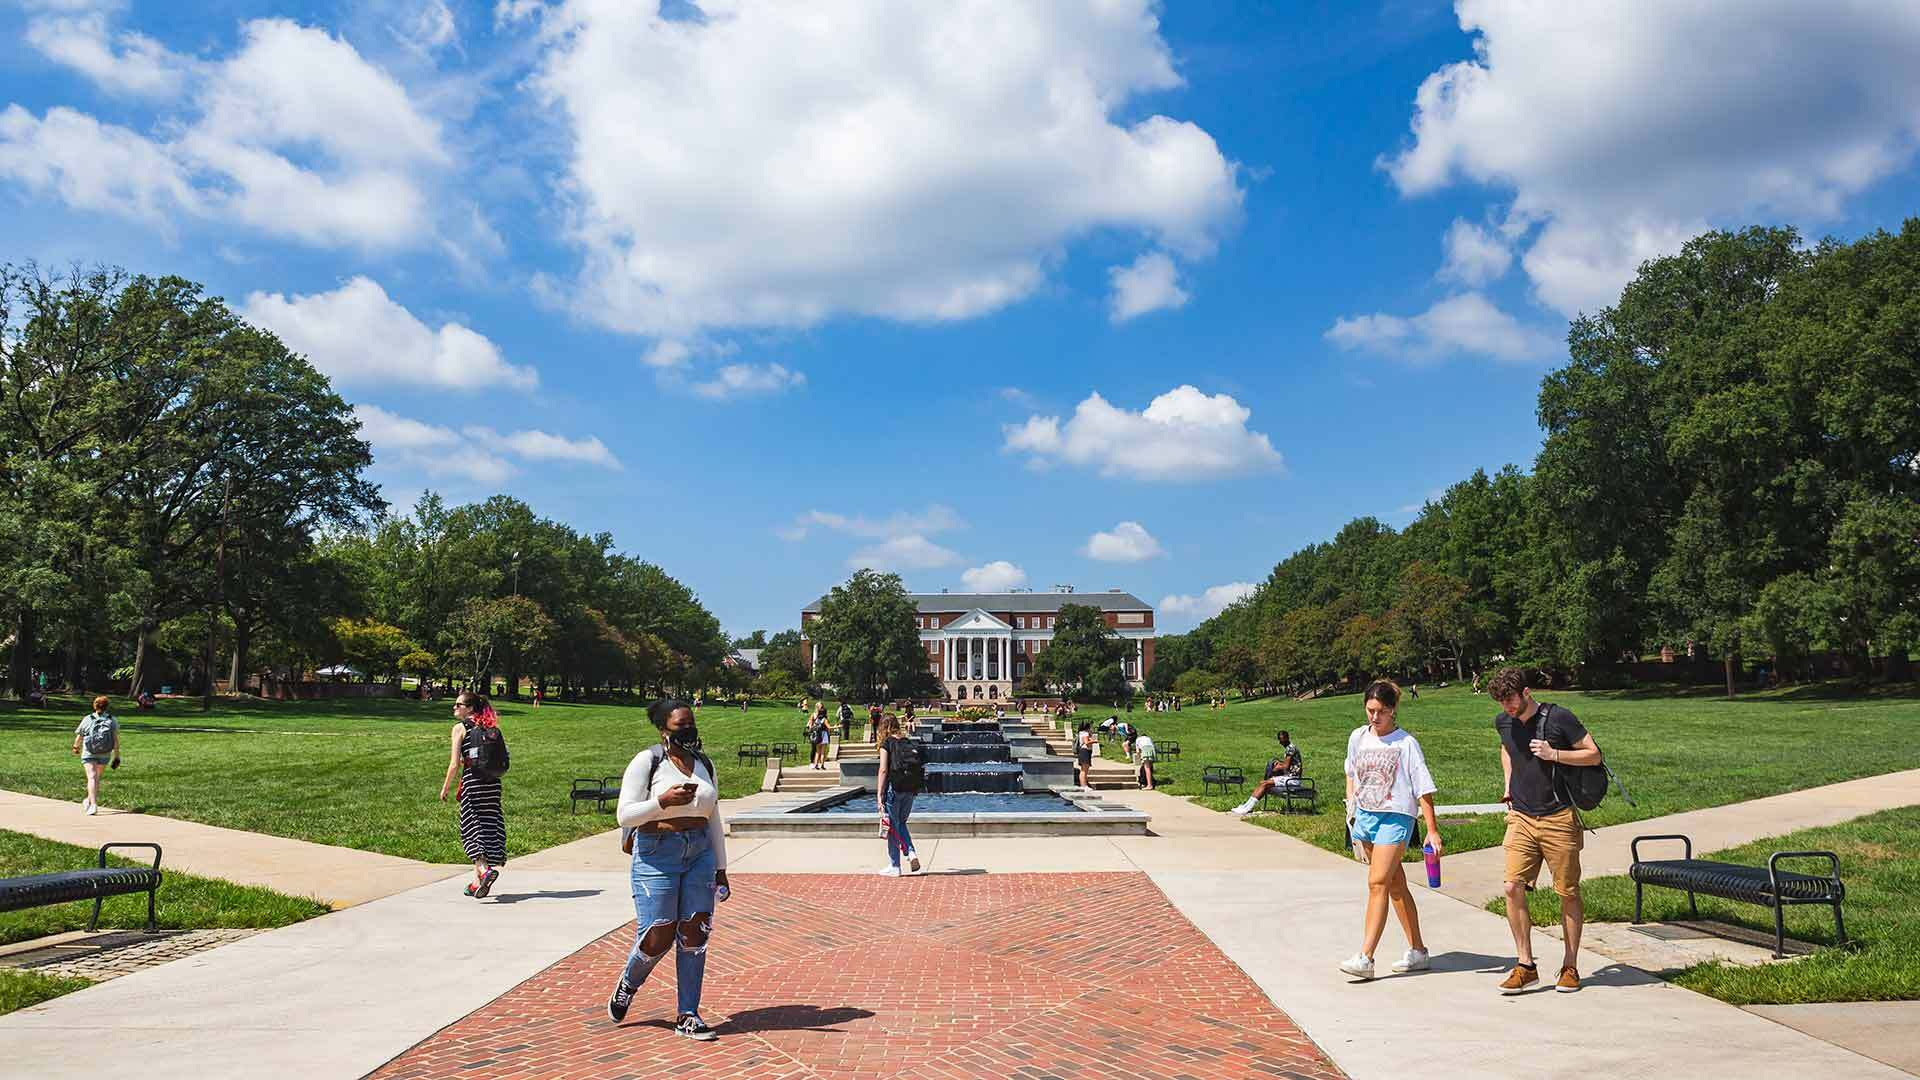 Students walking through McKeldin Mall on a sunny, partially cloudy day